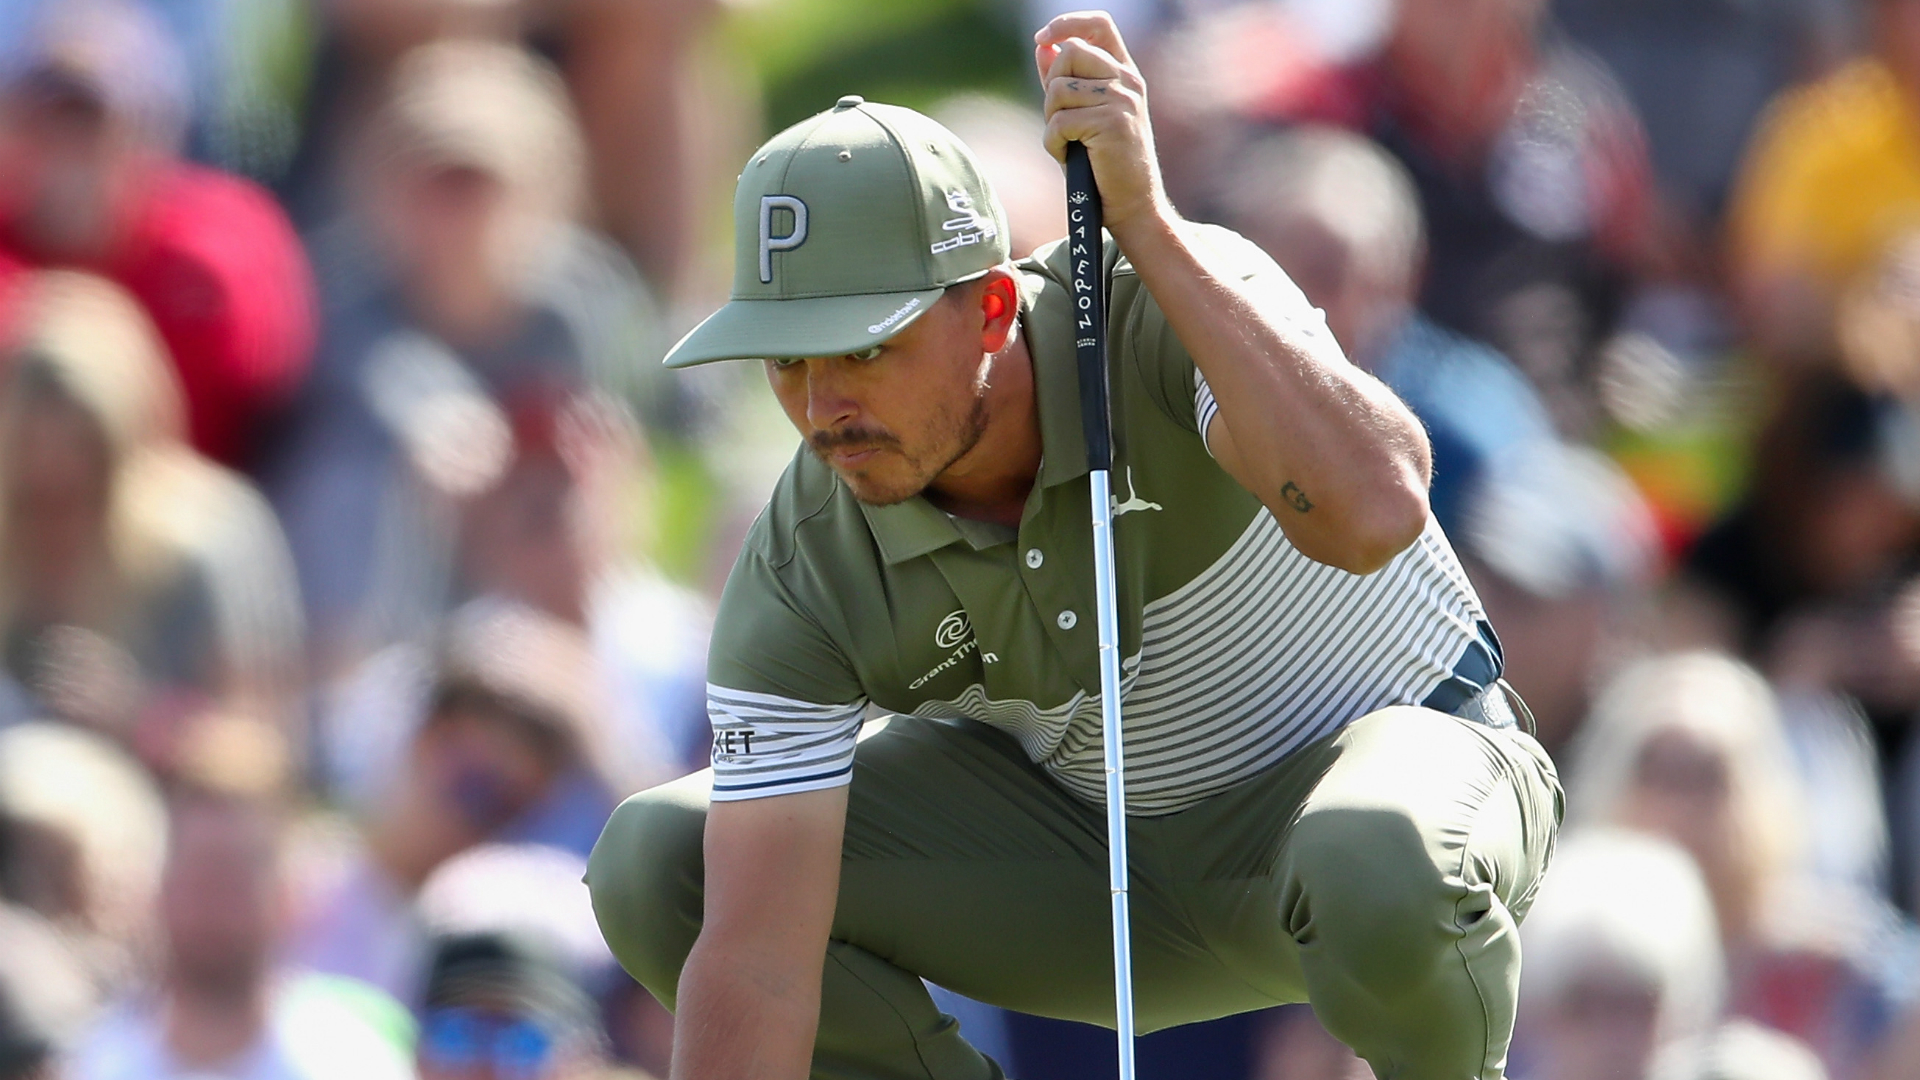 Fowler struggles as Clark flourishes in career-low round at Phoenix Open